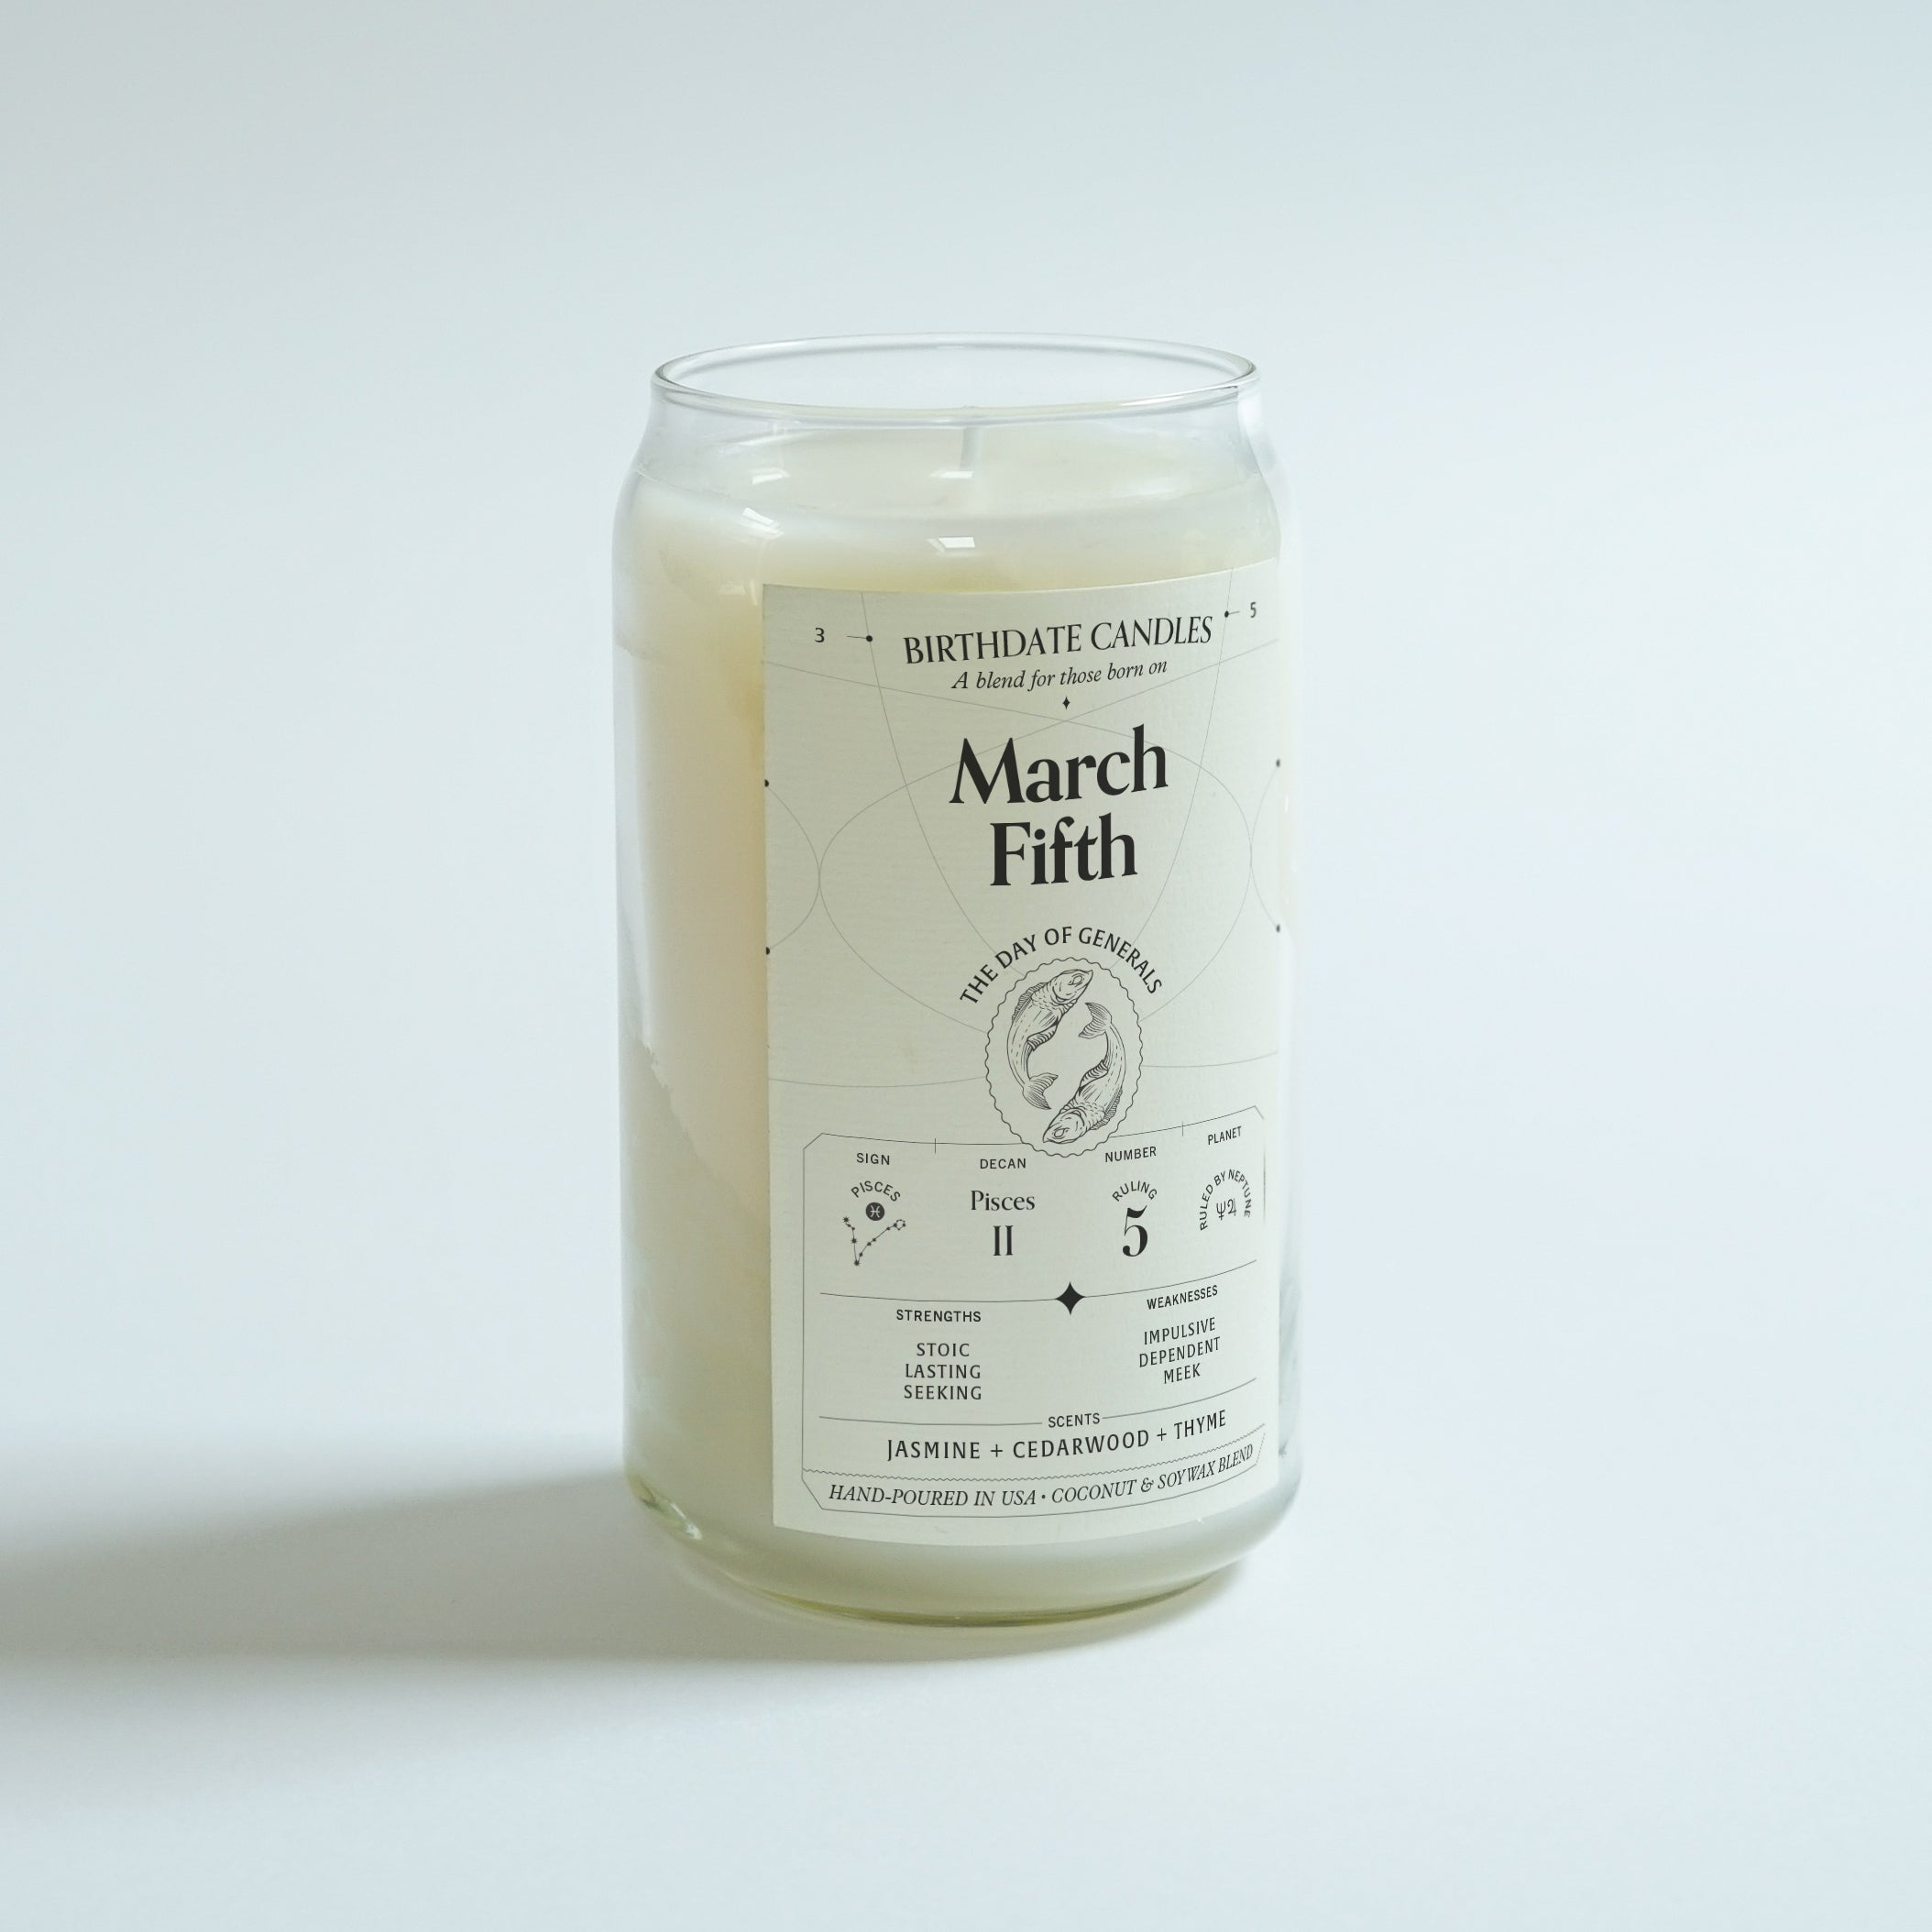 The March Fifth Candle